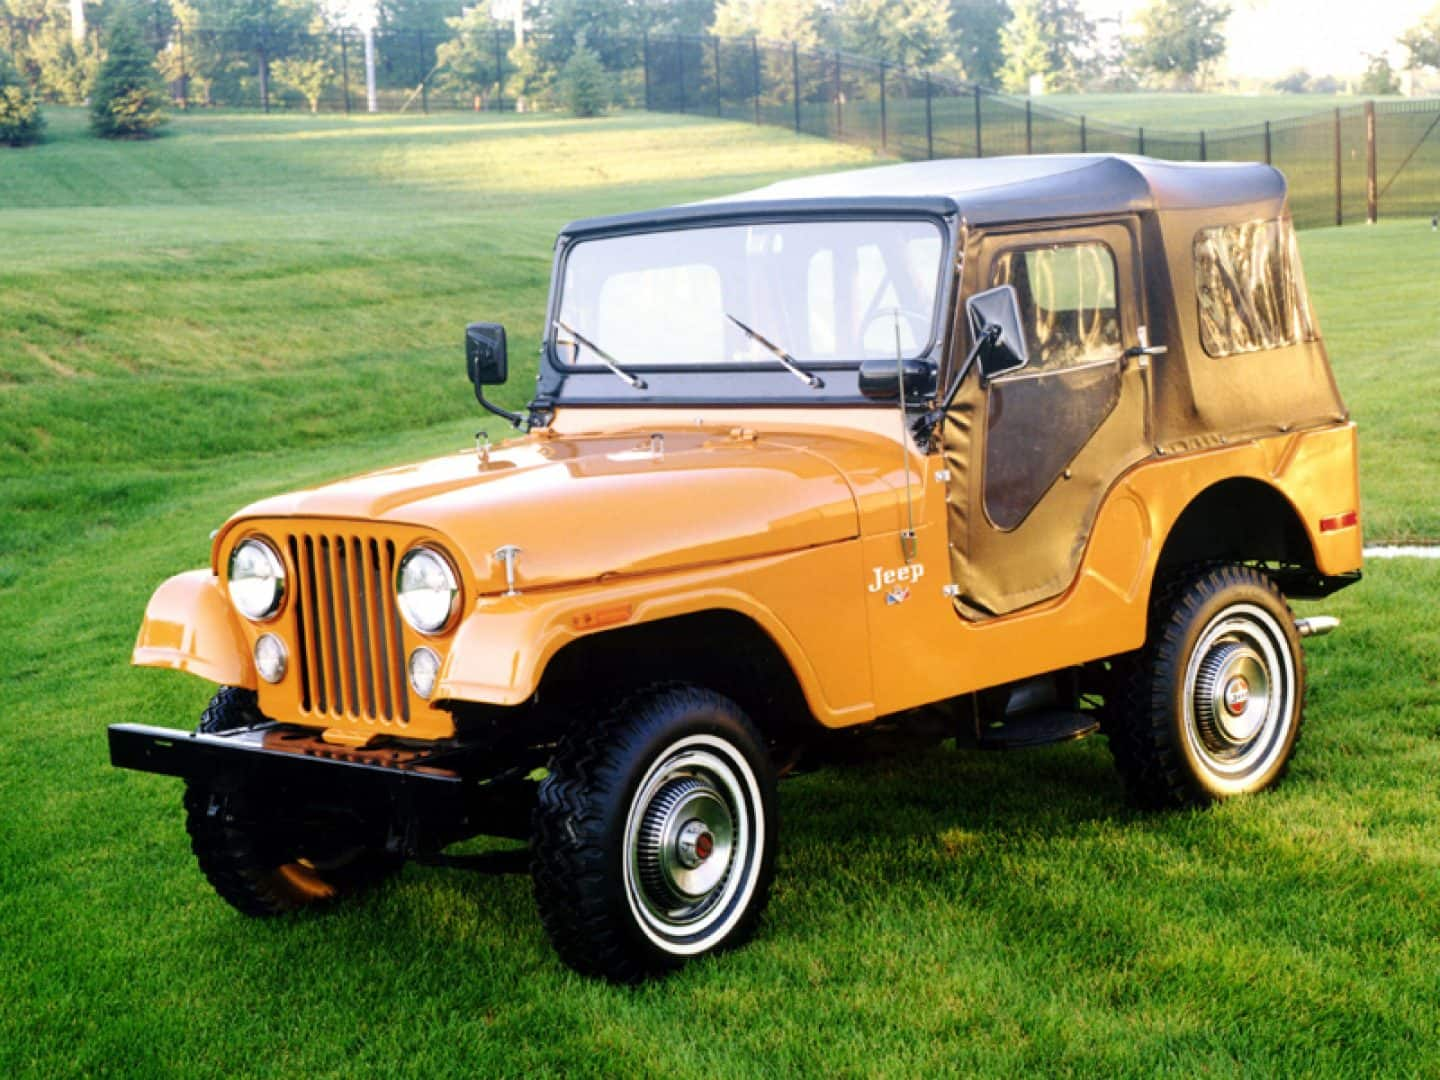 Jeep History in the 1970s